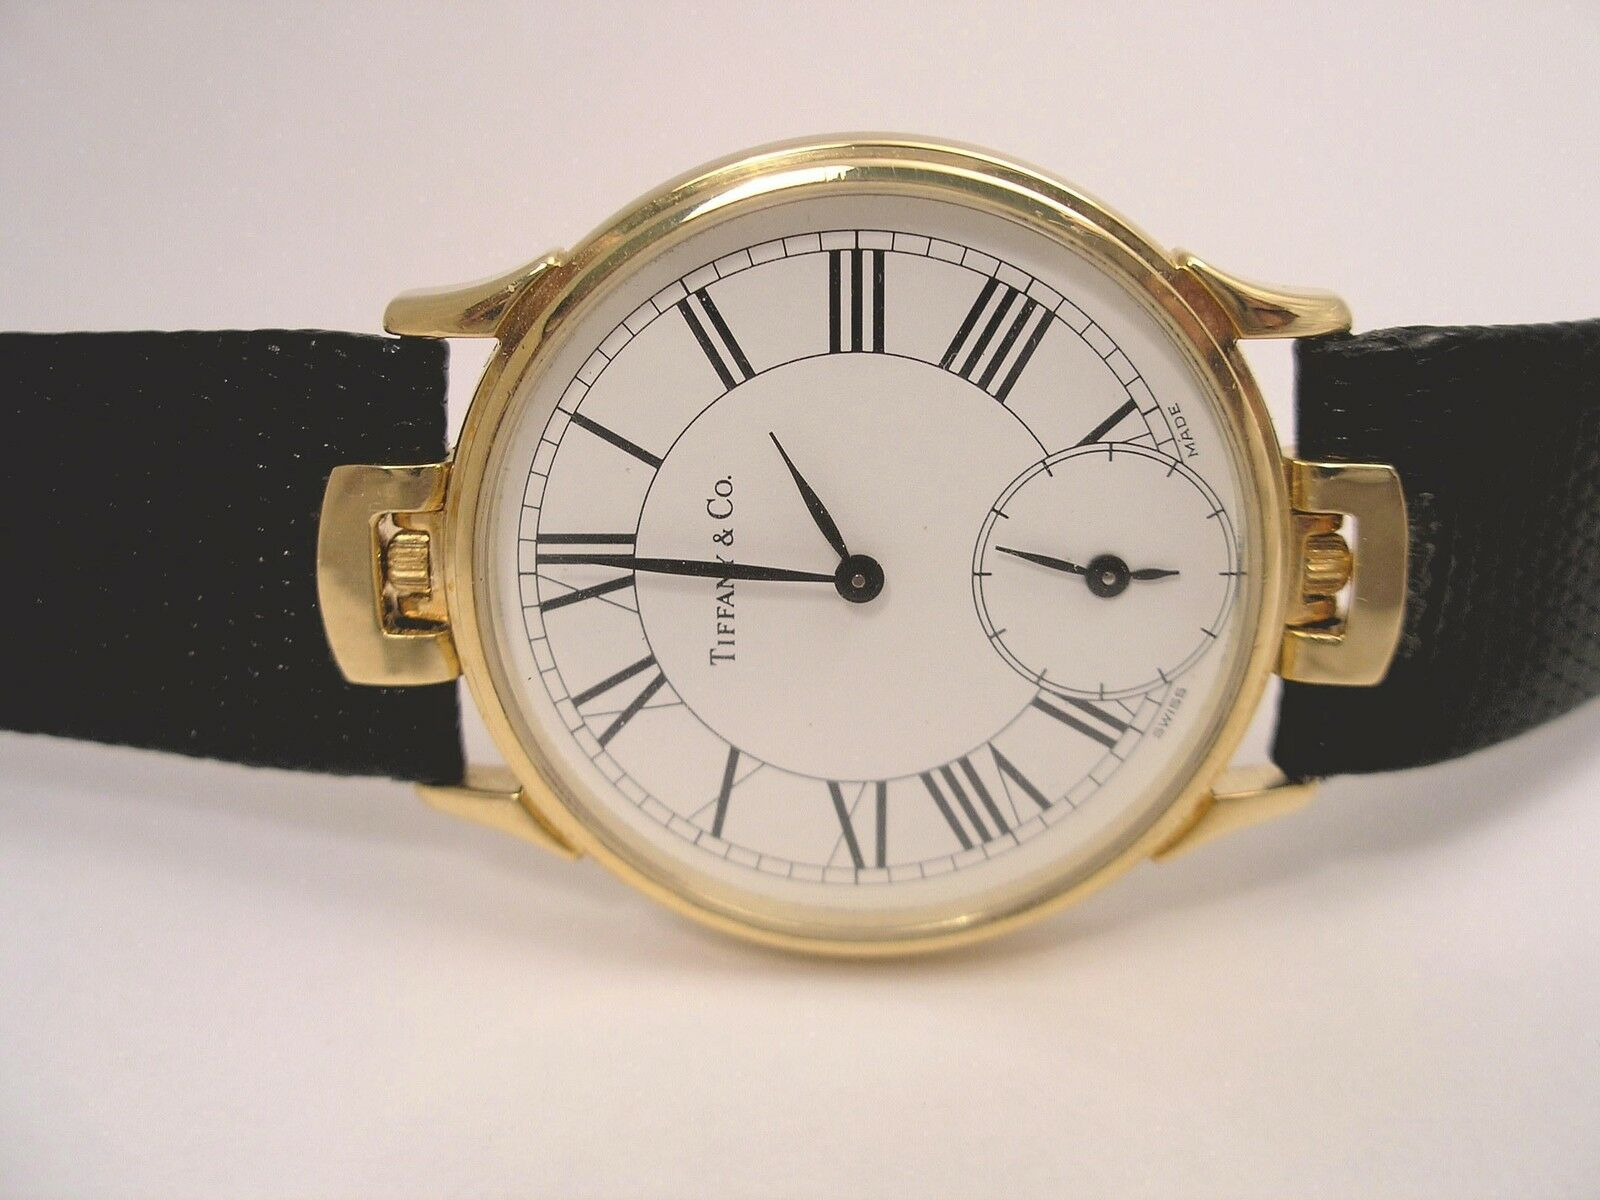 r_lemore for Fine Watches